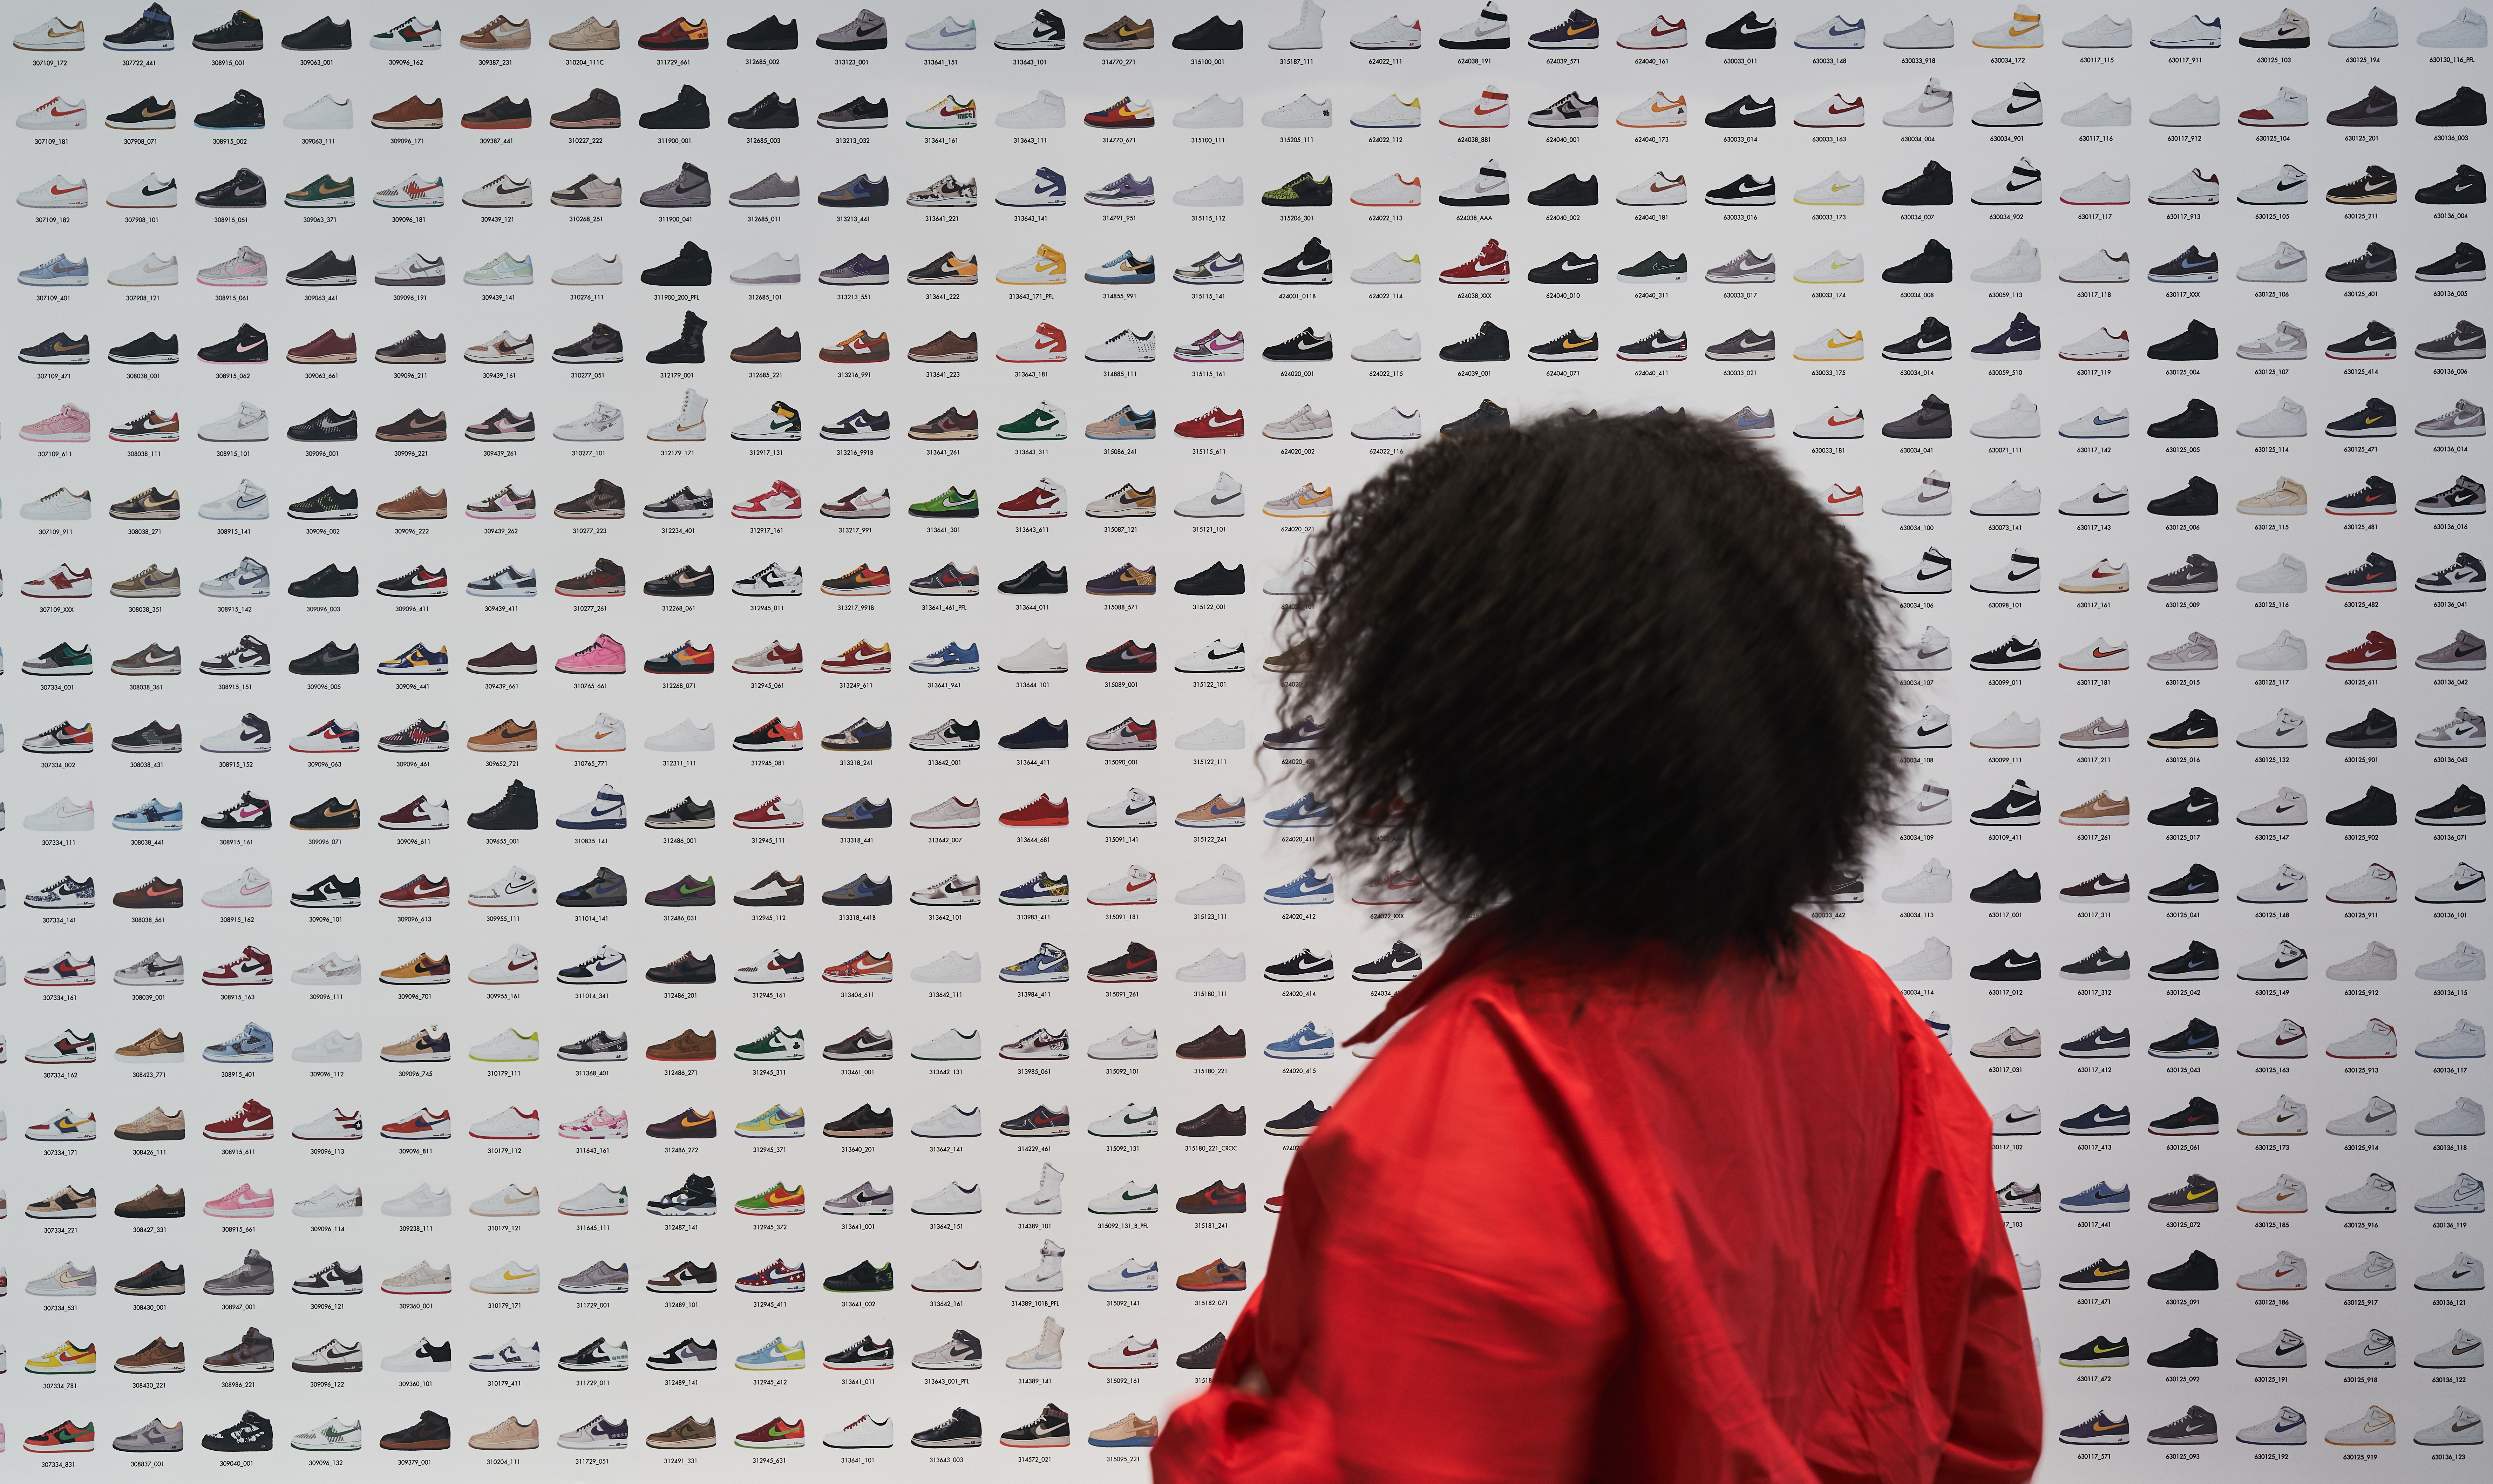 Entrance at the London Design Museum's Sneaker Unboxed exhibition.